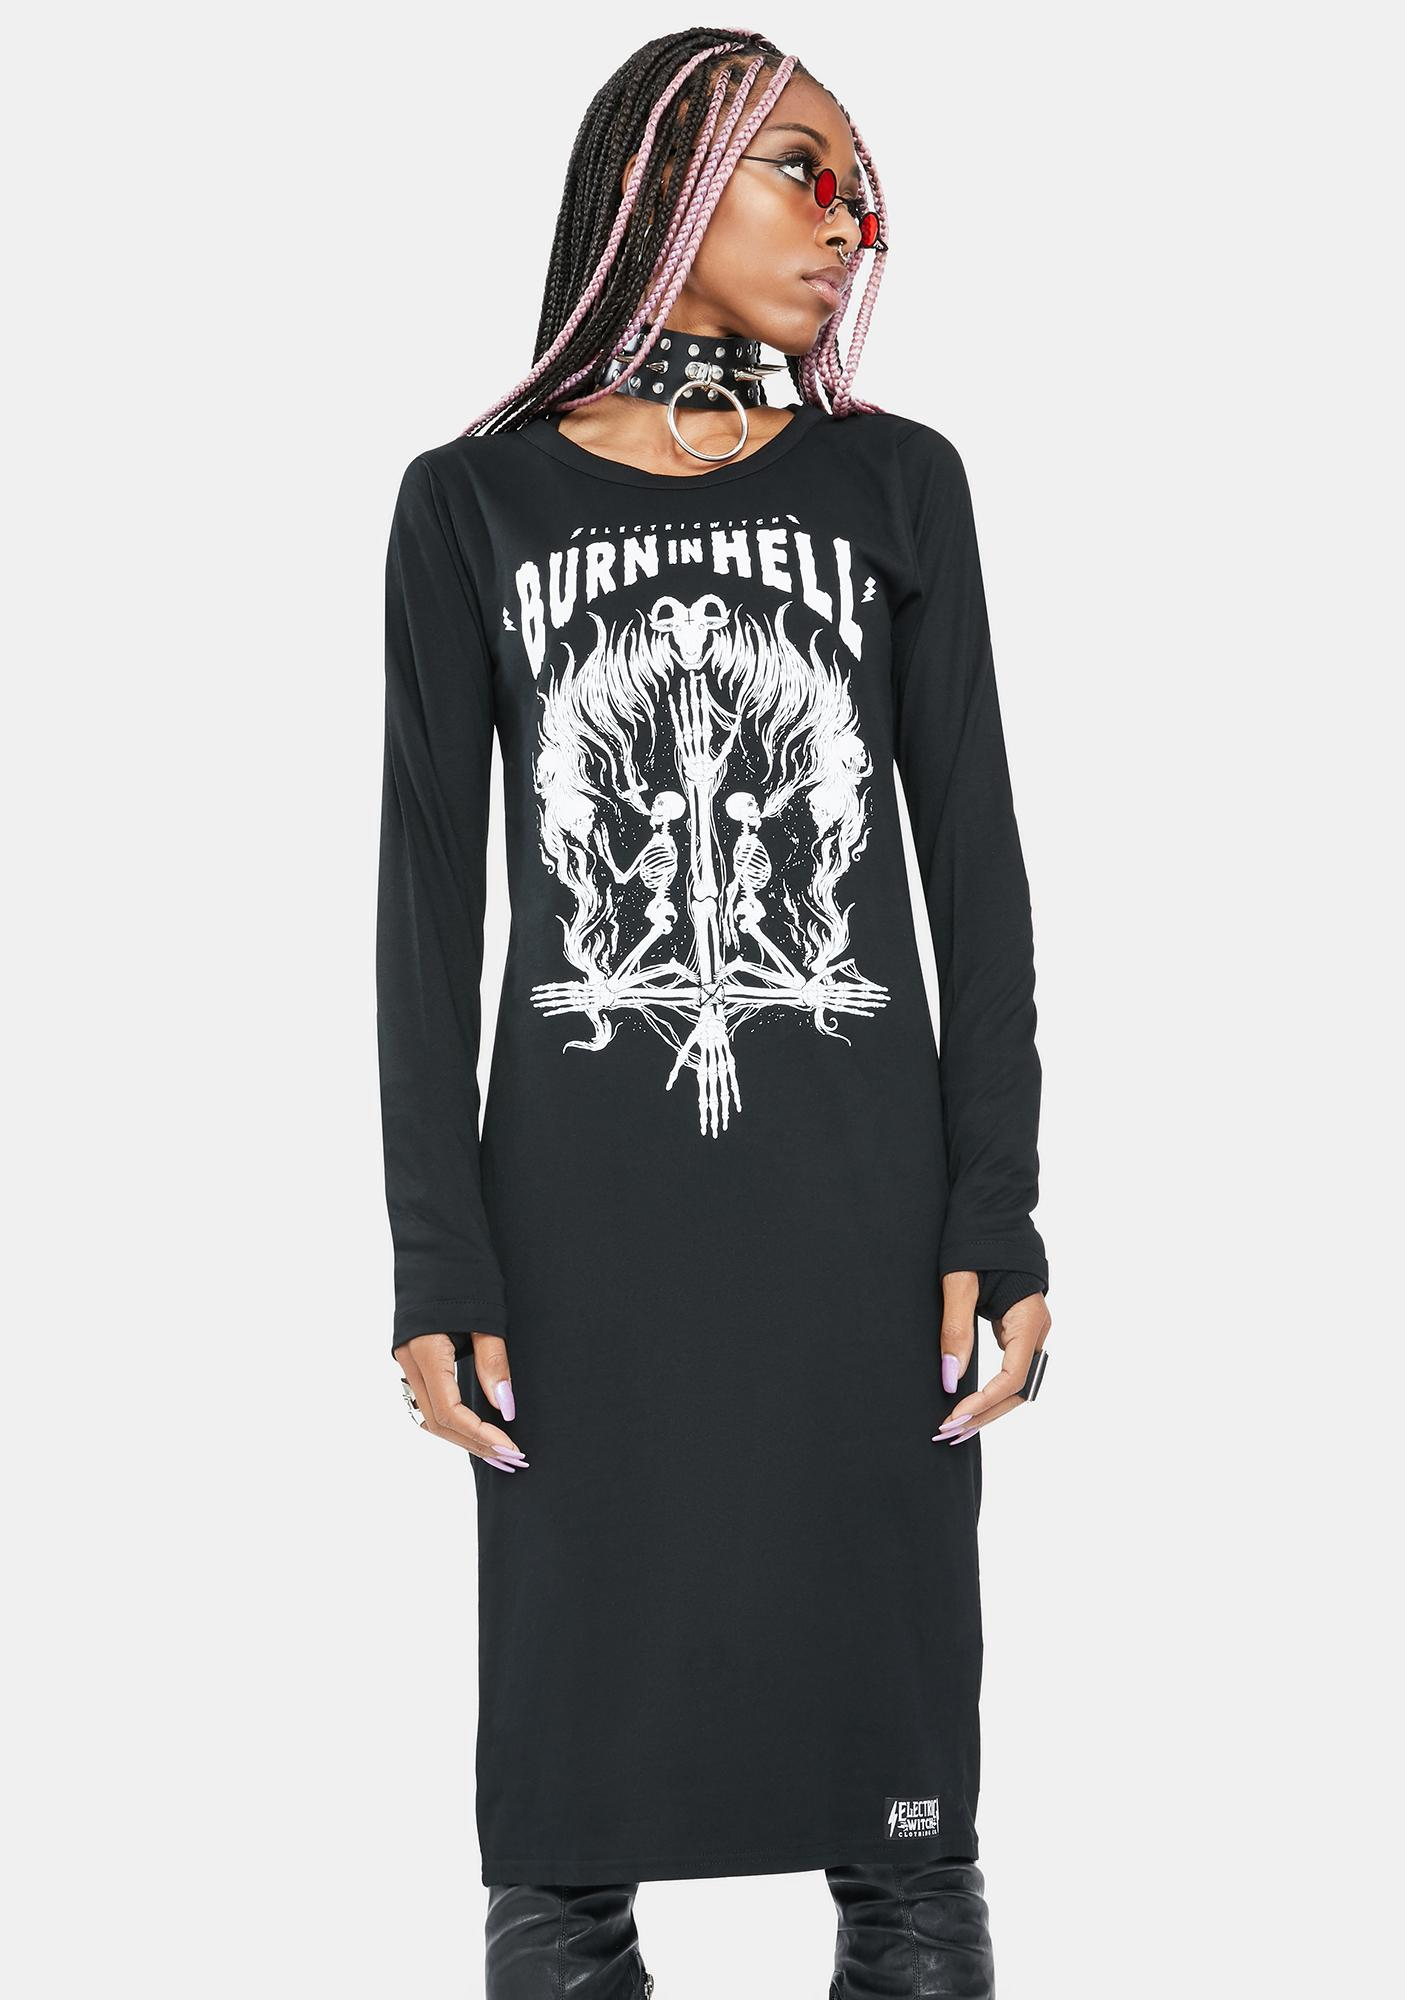 Electric Witch Burn In Hell Long Sleeve Dress